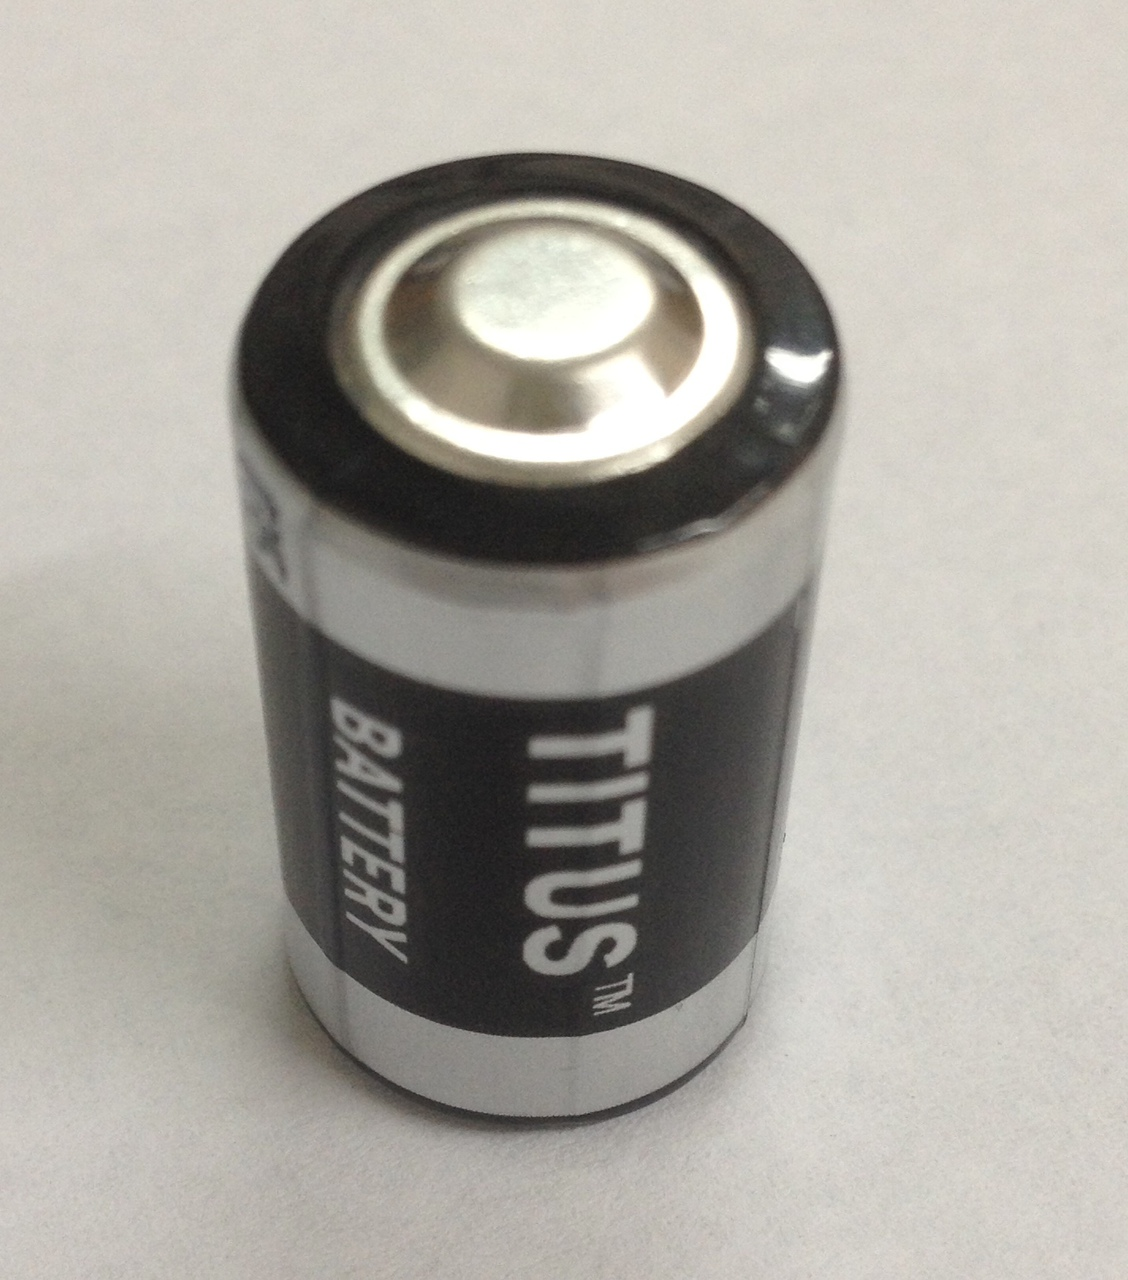 Titus 1/2 AA Size 3.6V ER14250MT High Energy Lithium Battery With Solder Tabs - 4 Pack + Free Shipping!